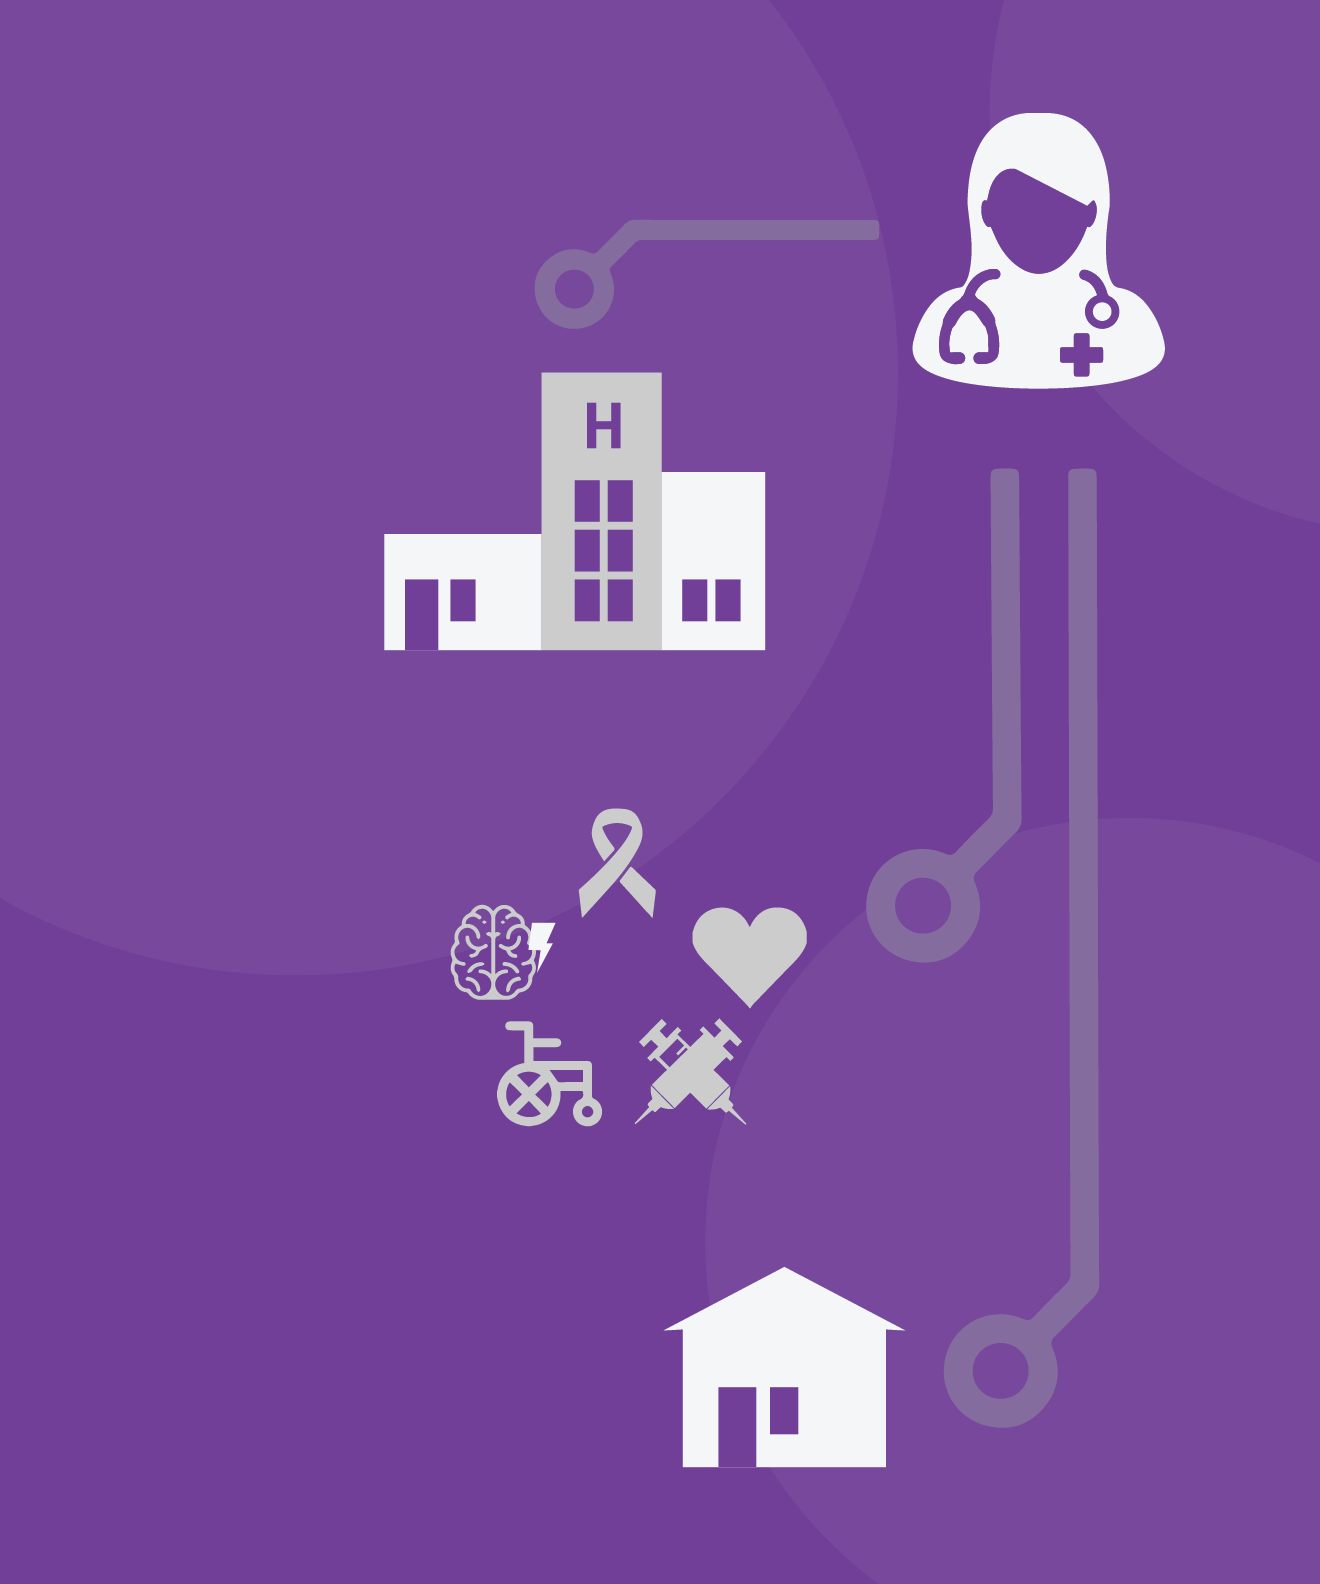 Clinical Pathways - We developed our inpatient-to-home clinical pathways with leading physicians, nurse navigators, and healthcare professionals at Hoag Hospital of Newport Beach.Our partner agencies have an average of a 4.5 Star Rating from CMS for Quality of Patient Care.